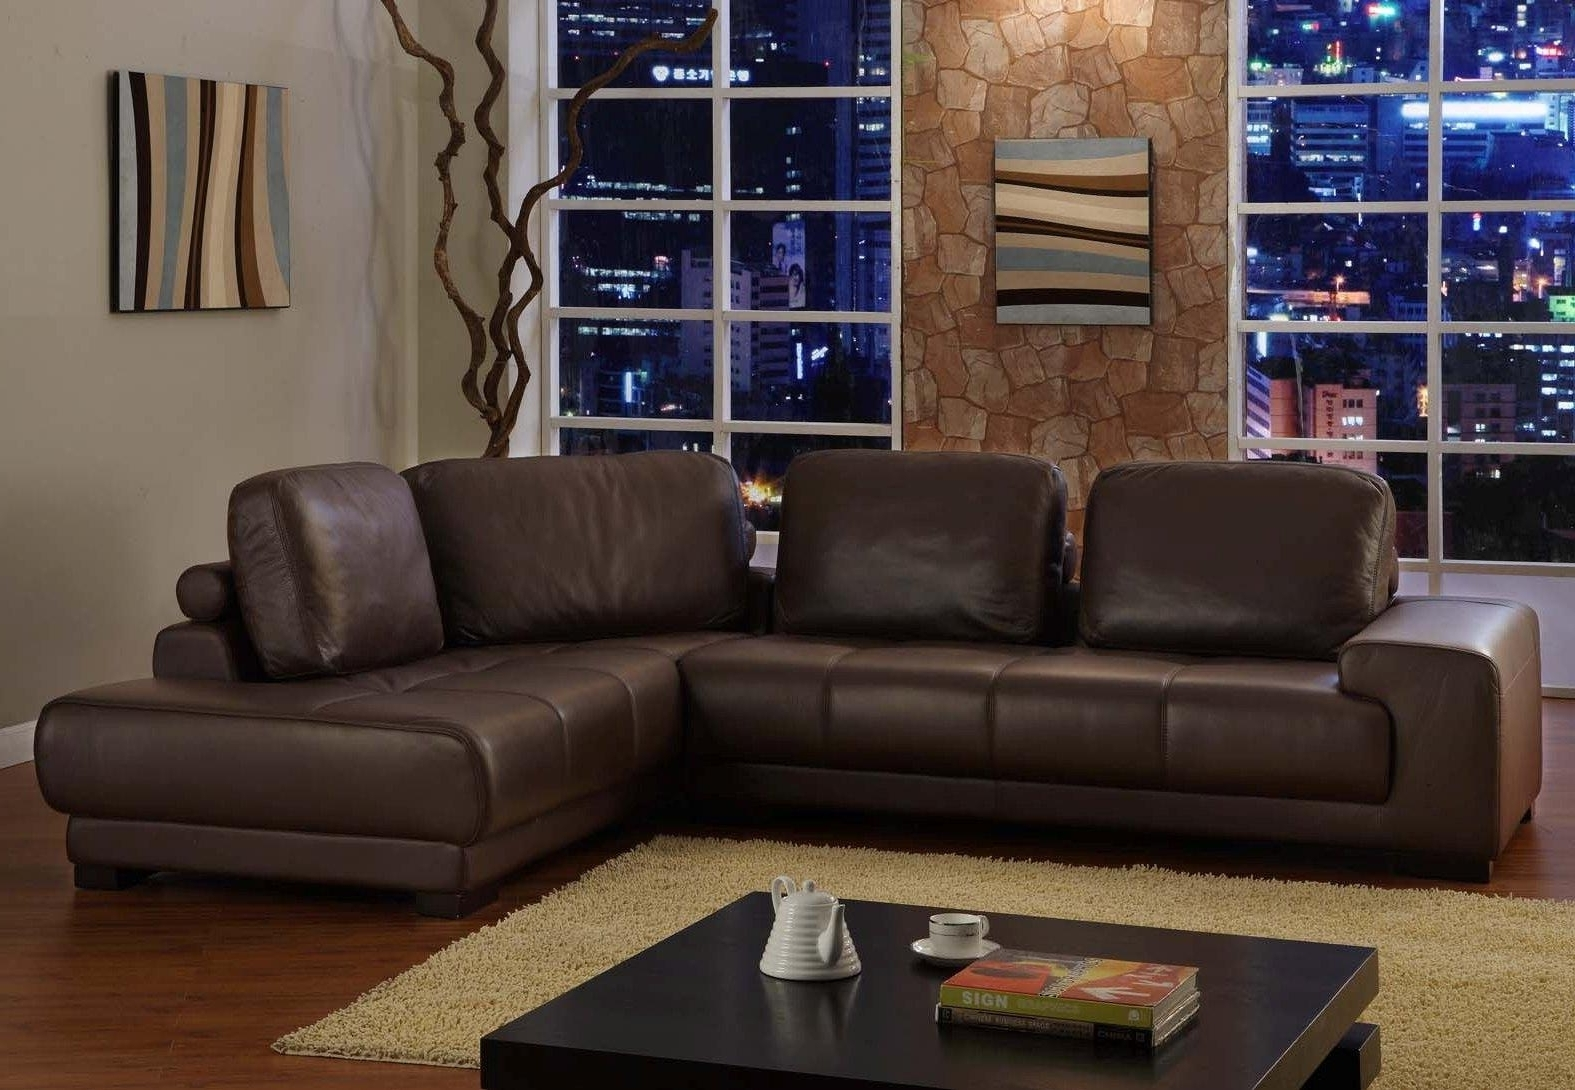 Most Recently Released Clearance Sectional Sofas With Regard To Sectional Sofa Clearance: The Best Way To Get High Quality Sofa In (View 13 of 20)